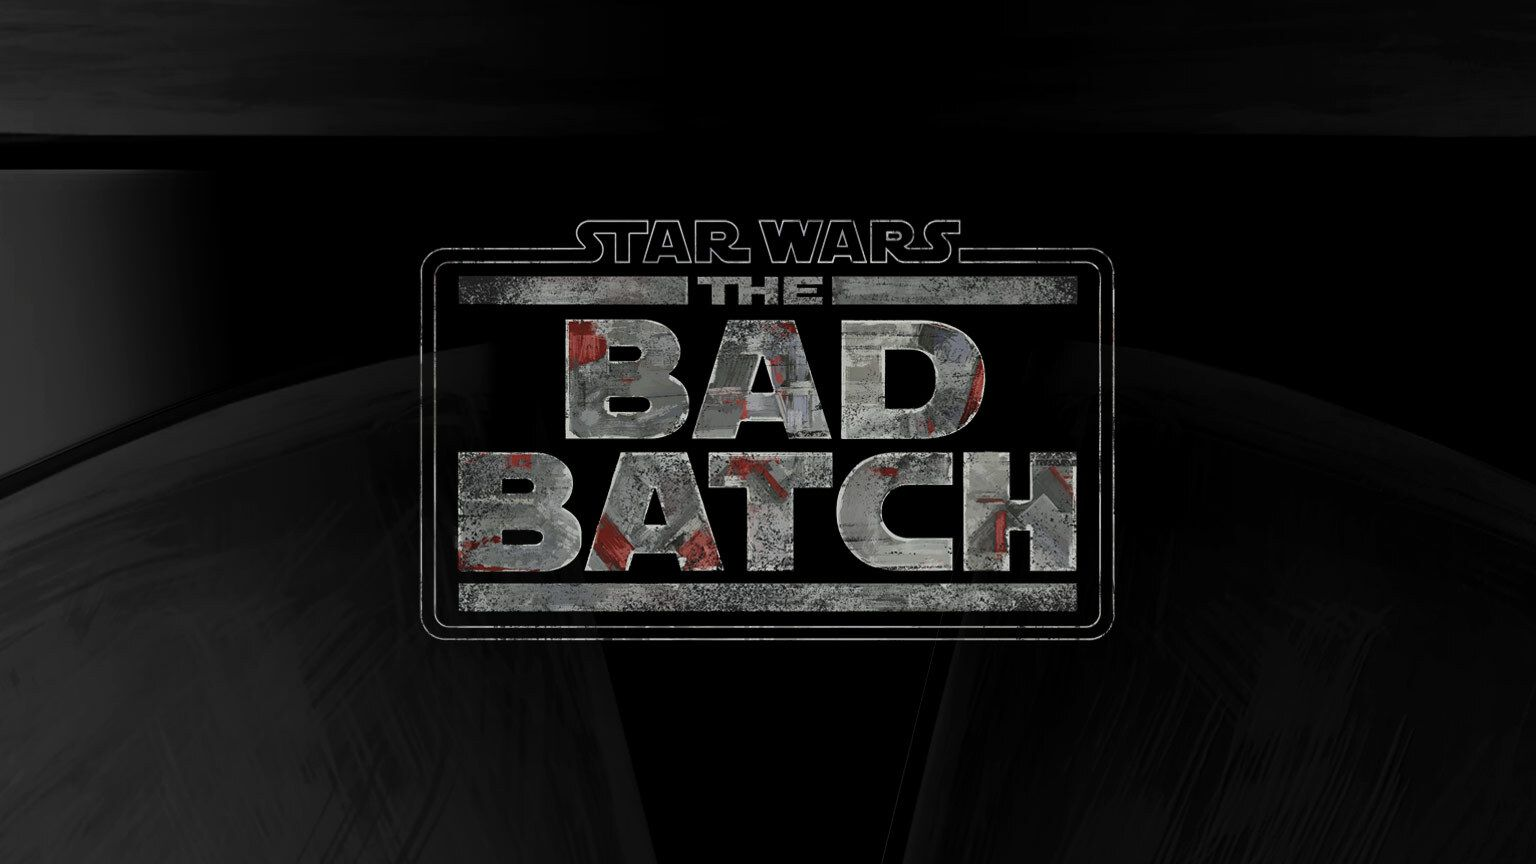 Star Wars: The Bad Batch artwork